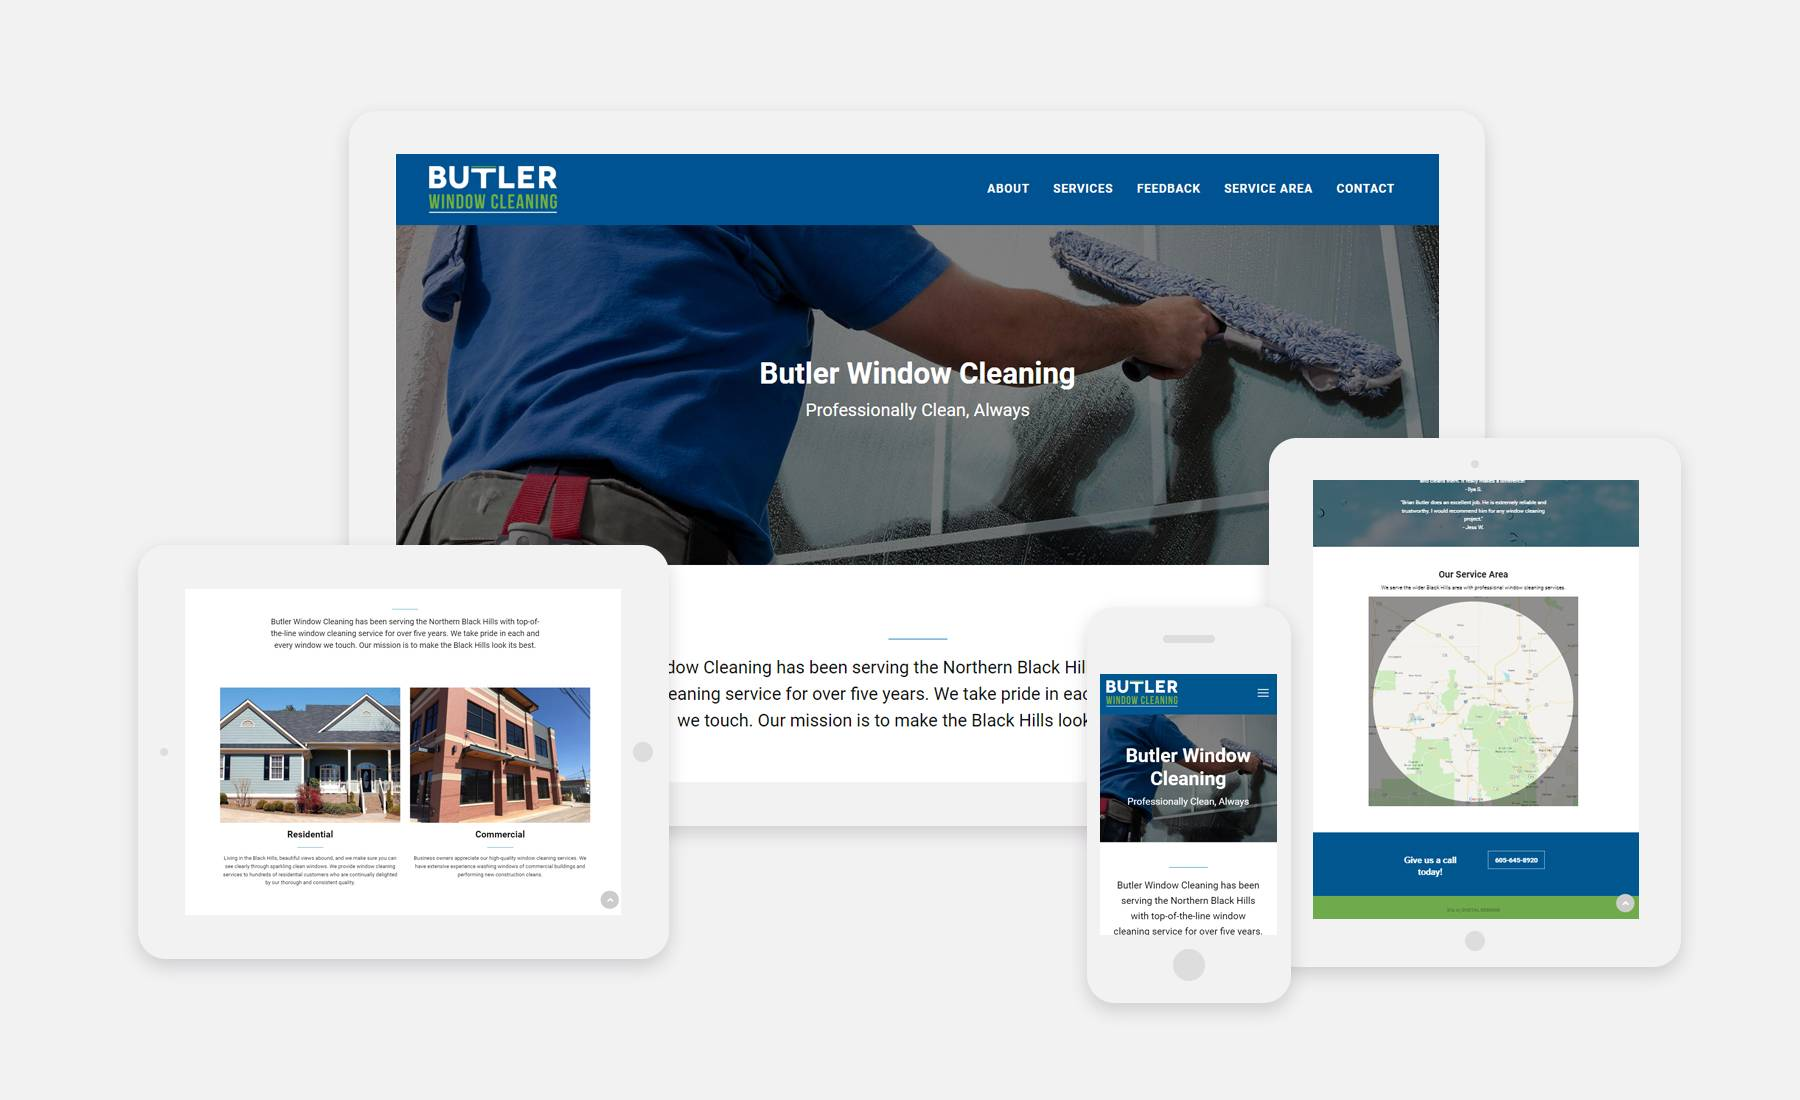 Butler Window Cleaning website shown on 4 devices: desktop, laptop, tablet and phone